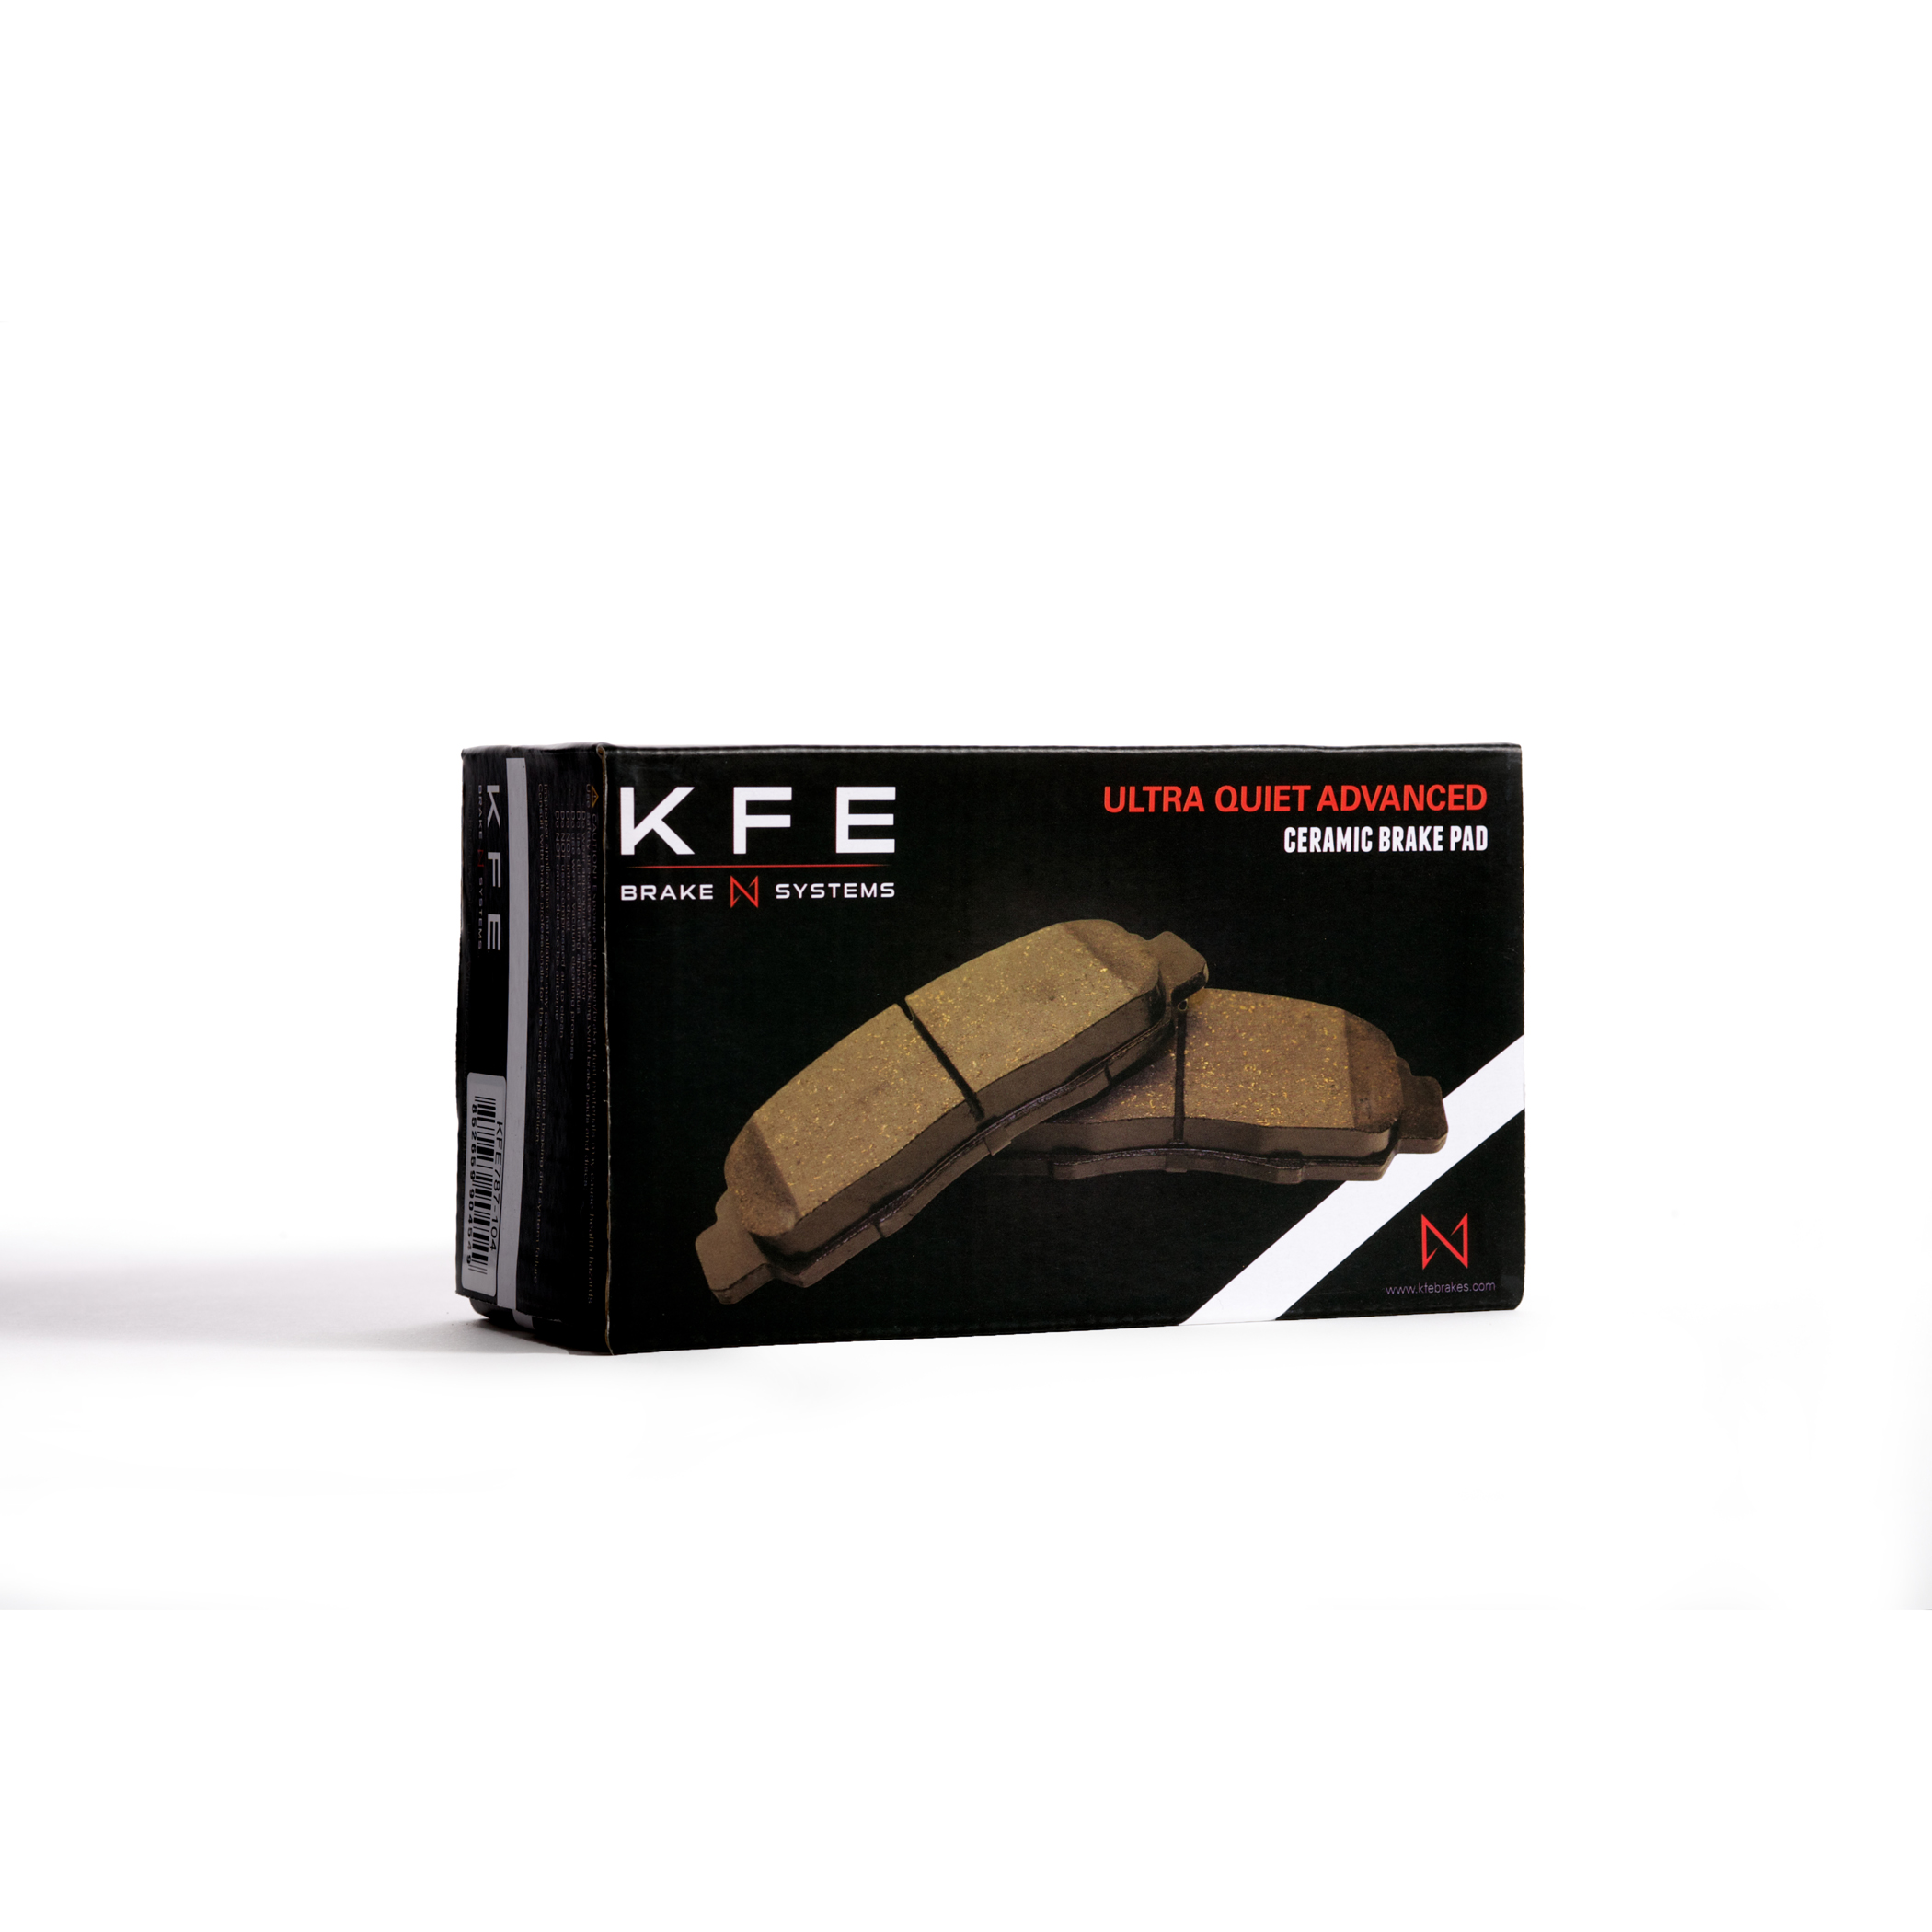 KFE Ultra Quiet Advanced Brake Pad Box